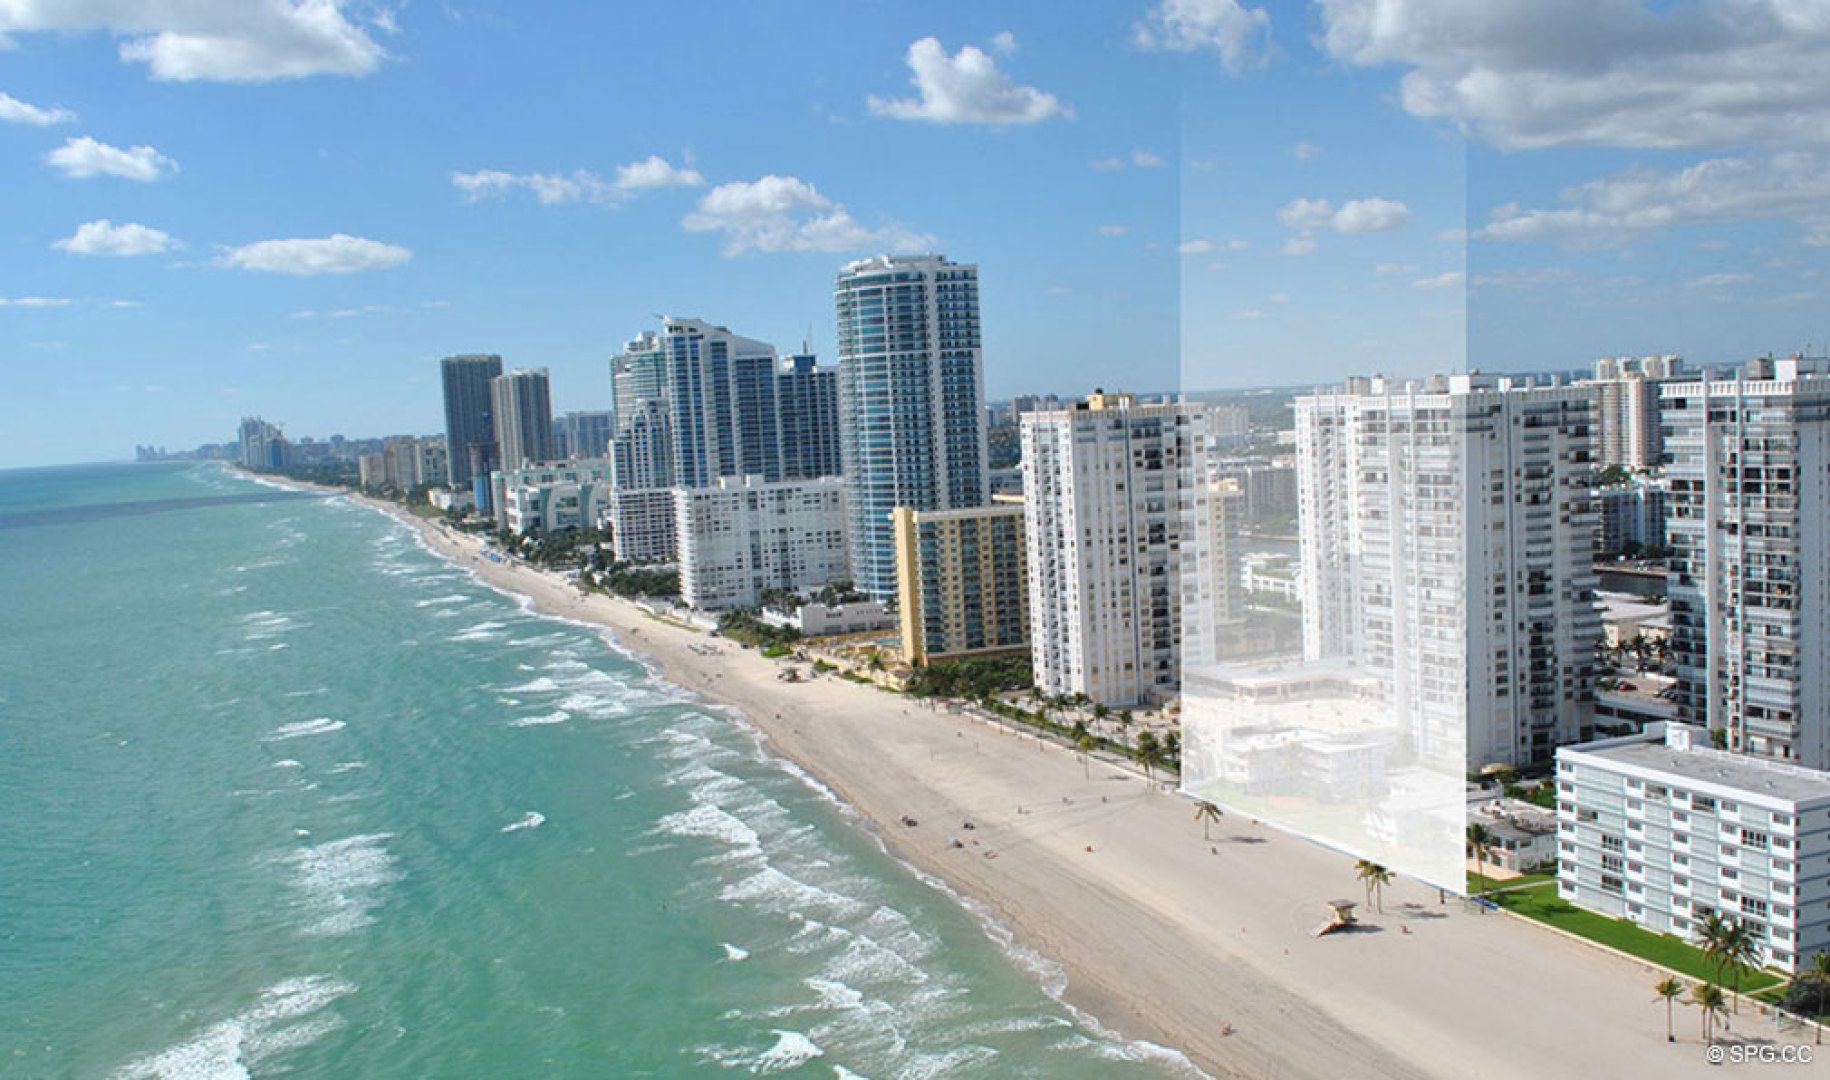 Location Looking South of Sage Beach, Luxury Oceanfront Condos in Hollywood Beach Florida 33019